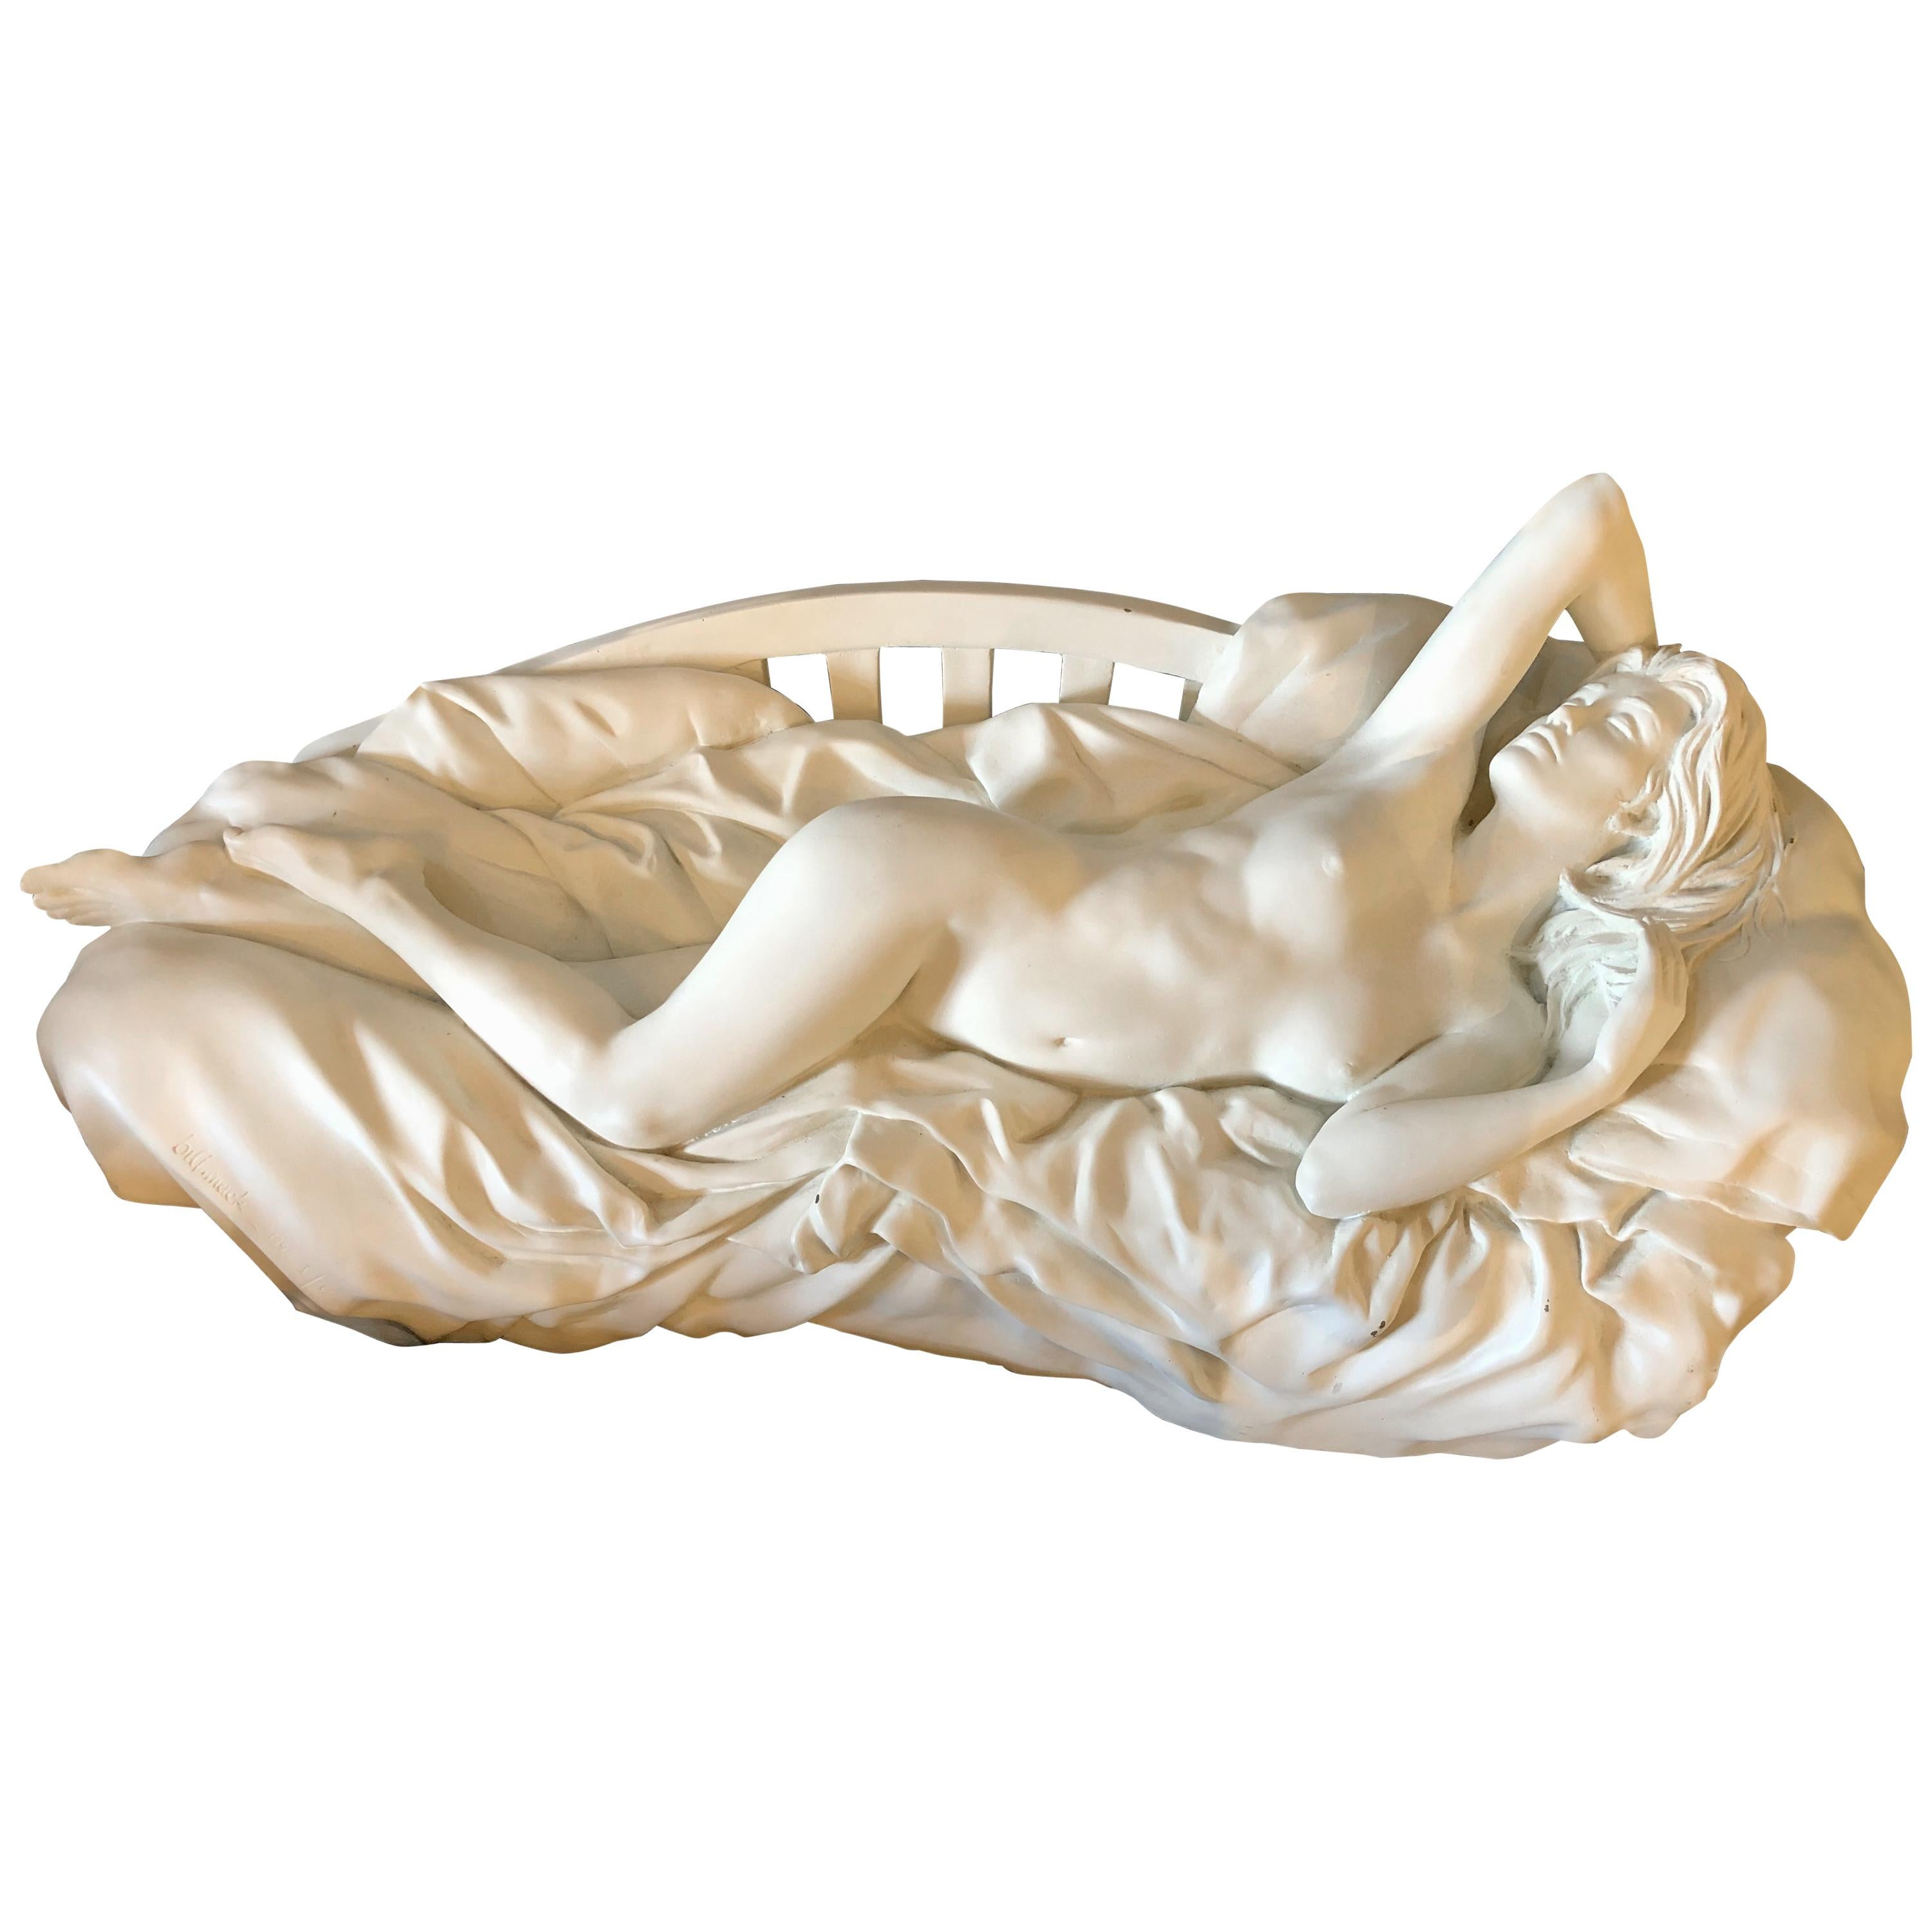 Bill Mack Tranquility Sculpture Bronze with White Patina